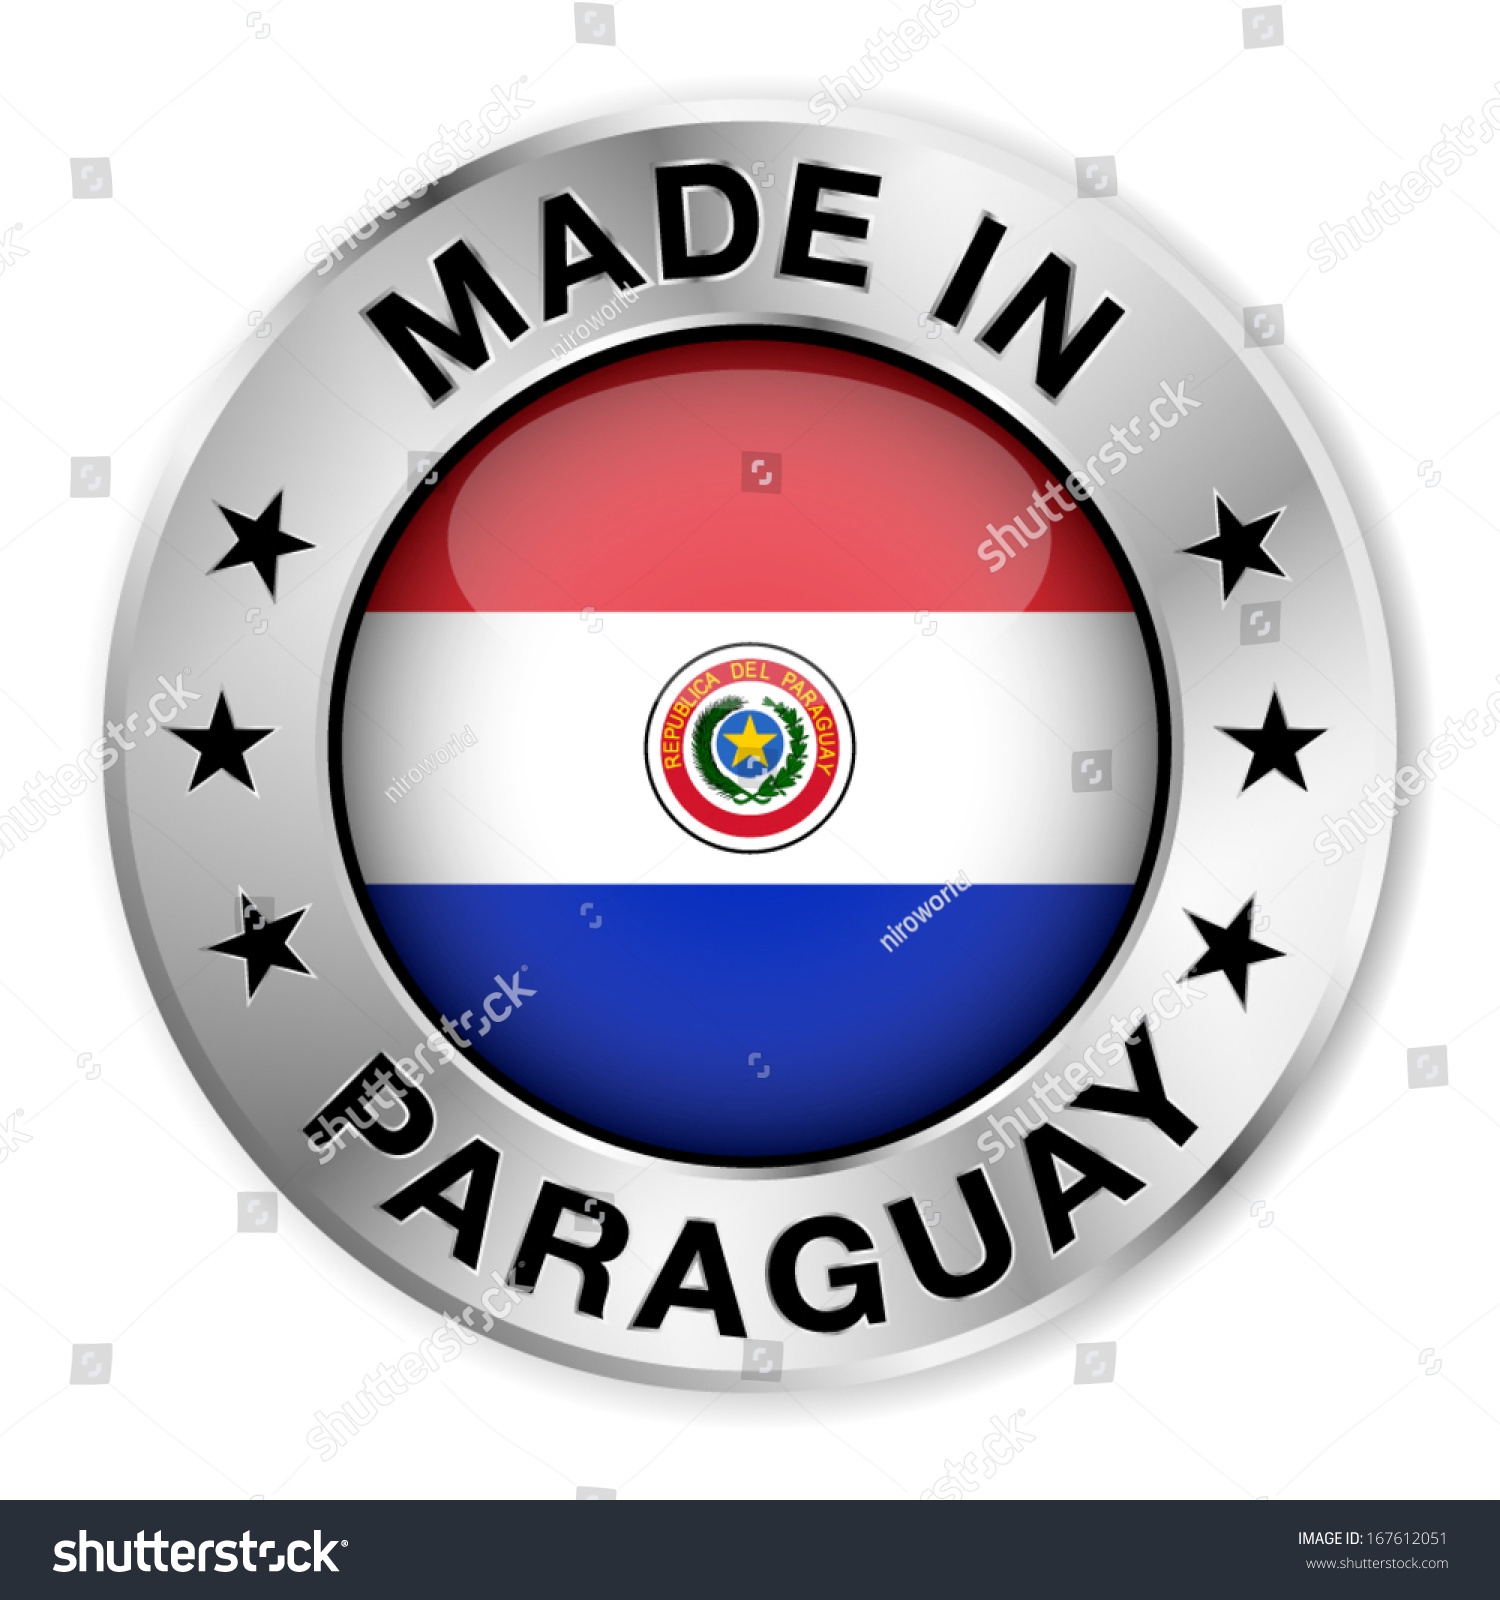 Paraguay flag symbol images symbol and sign ideas made paraguay silver badge icon central stock vector 167612051 made in paraguay silver badge and icon buycottarizona